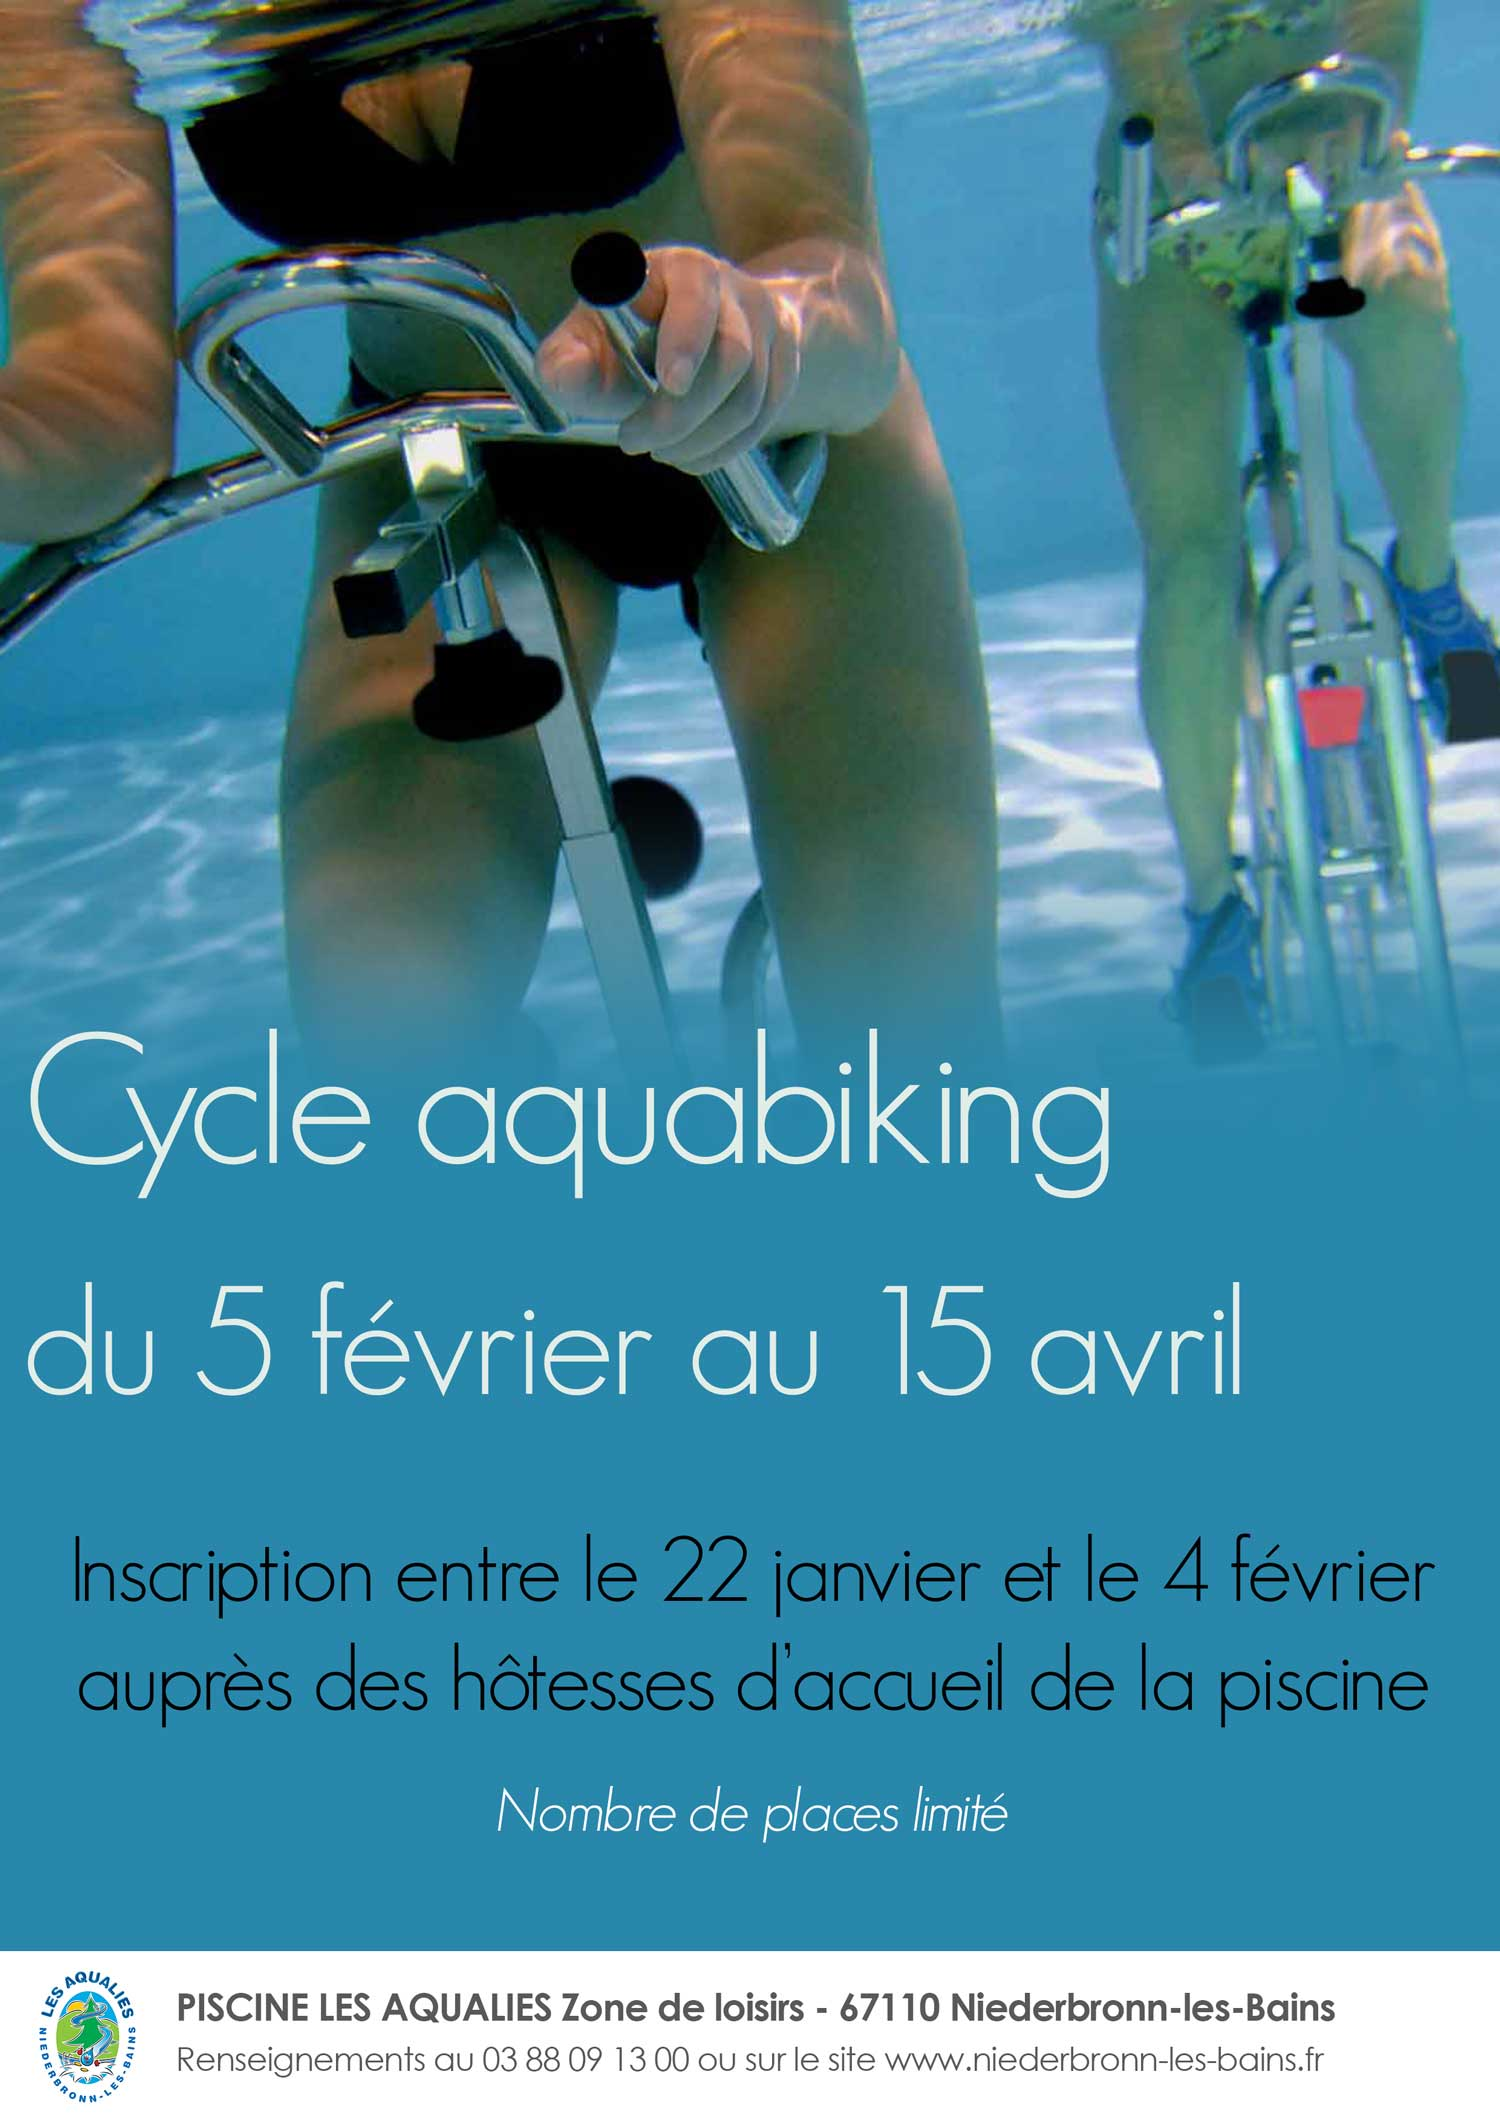 piscine aquabike inscription web gespeed ce Q2 MvRAkkG